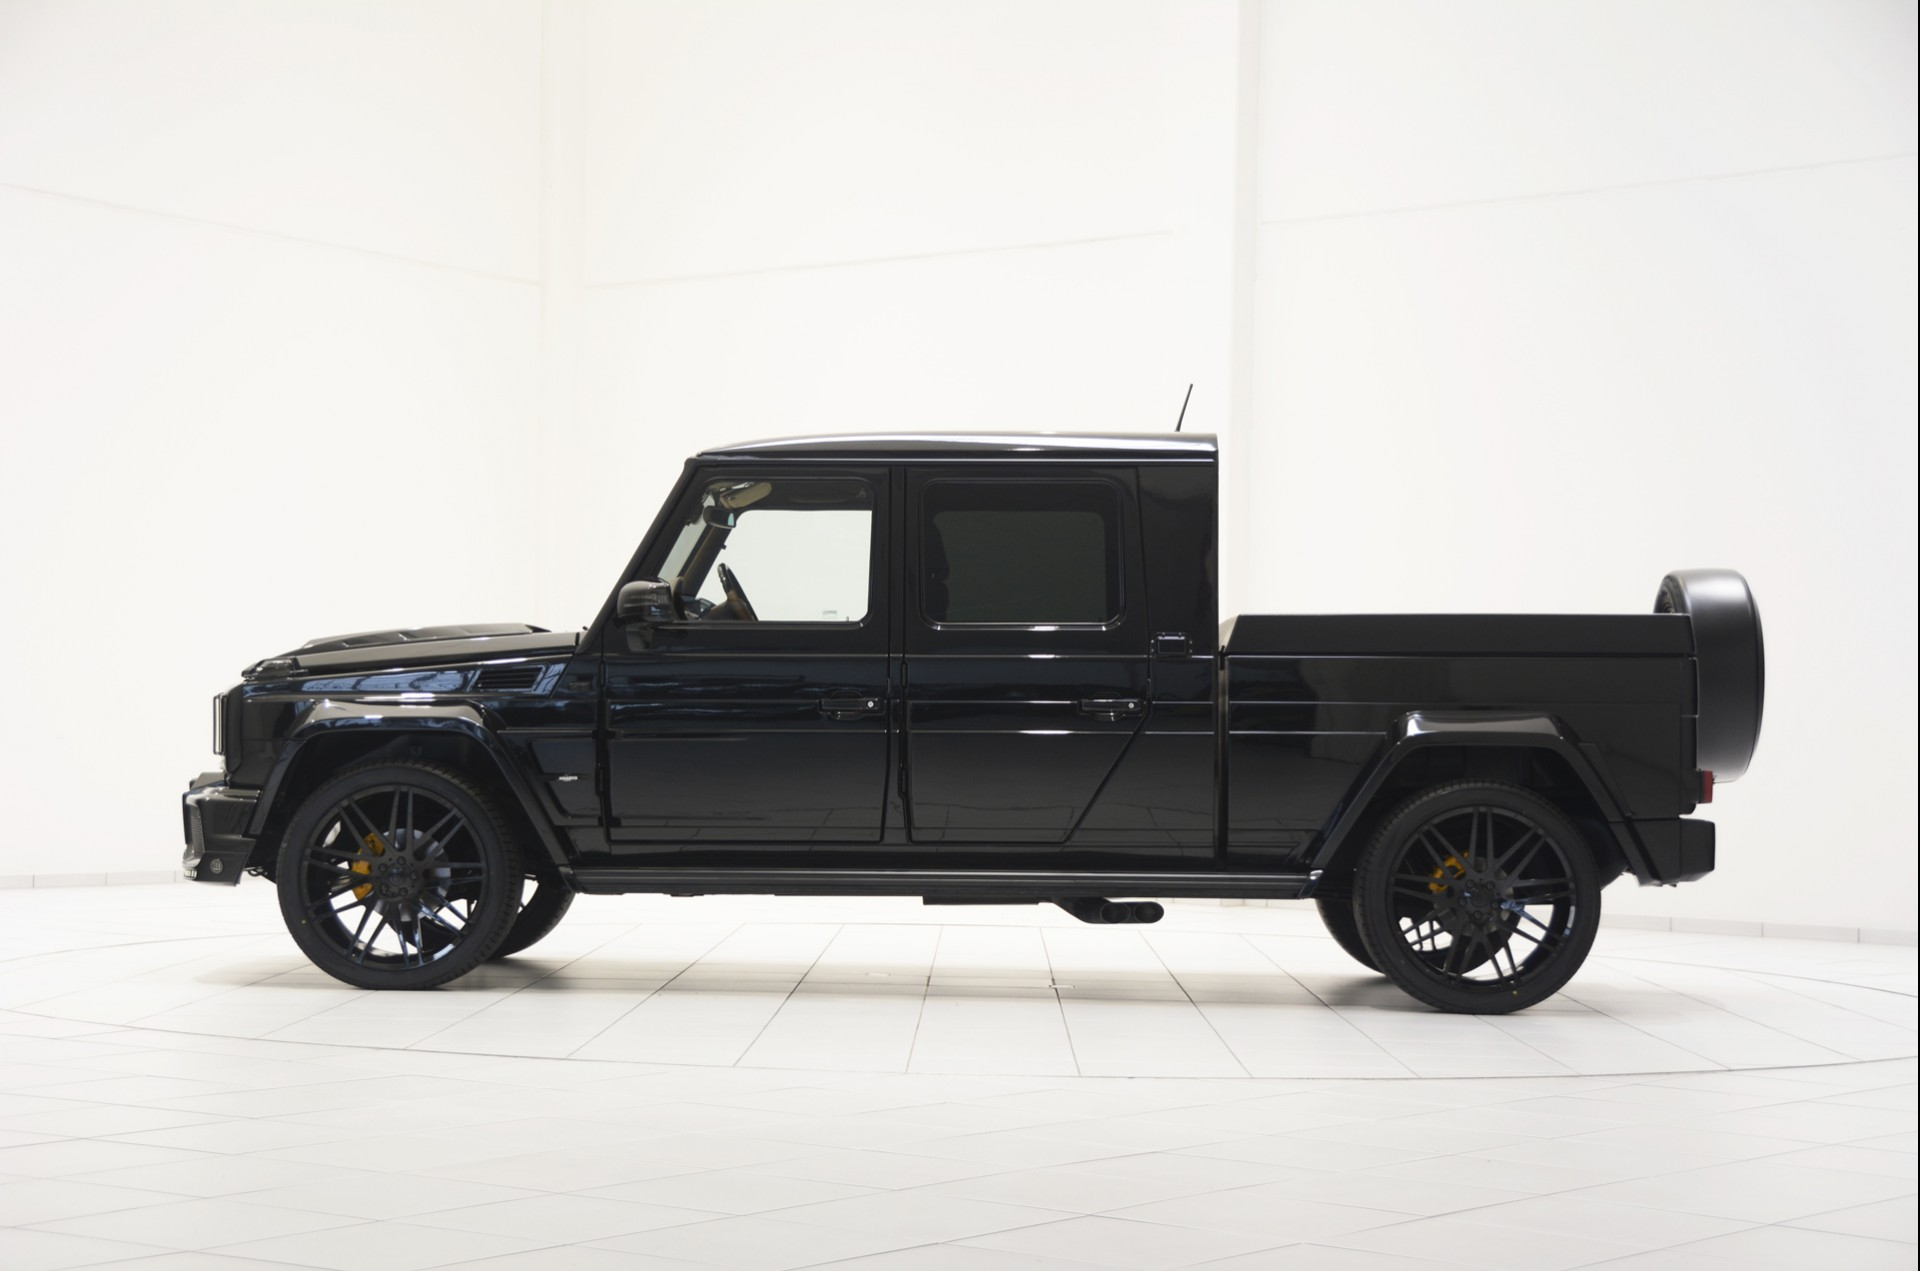 Brabus G500 XXL Pickup Truck Is Very Wide and Cool